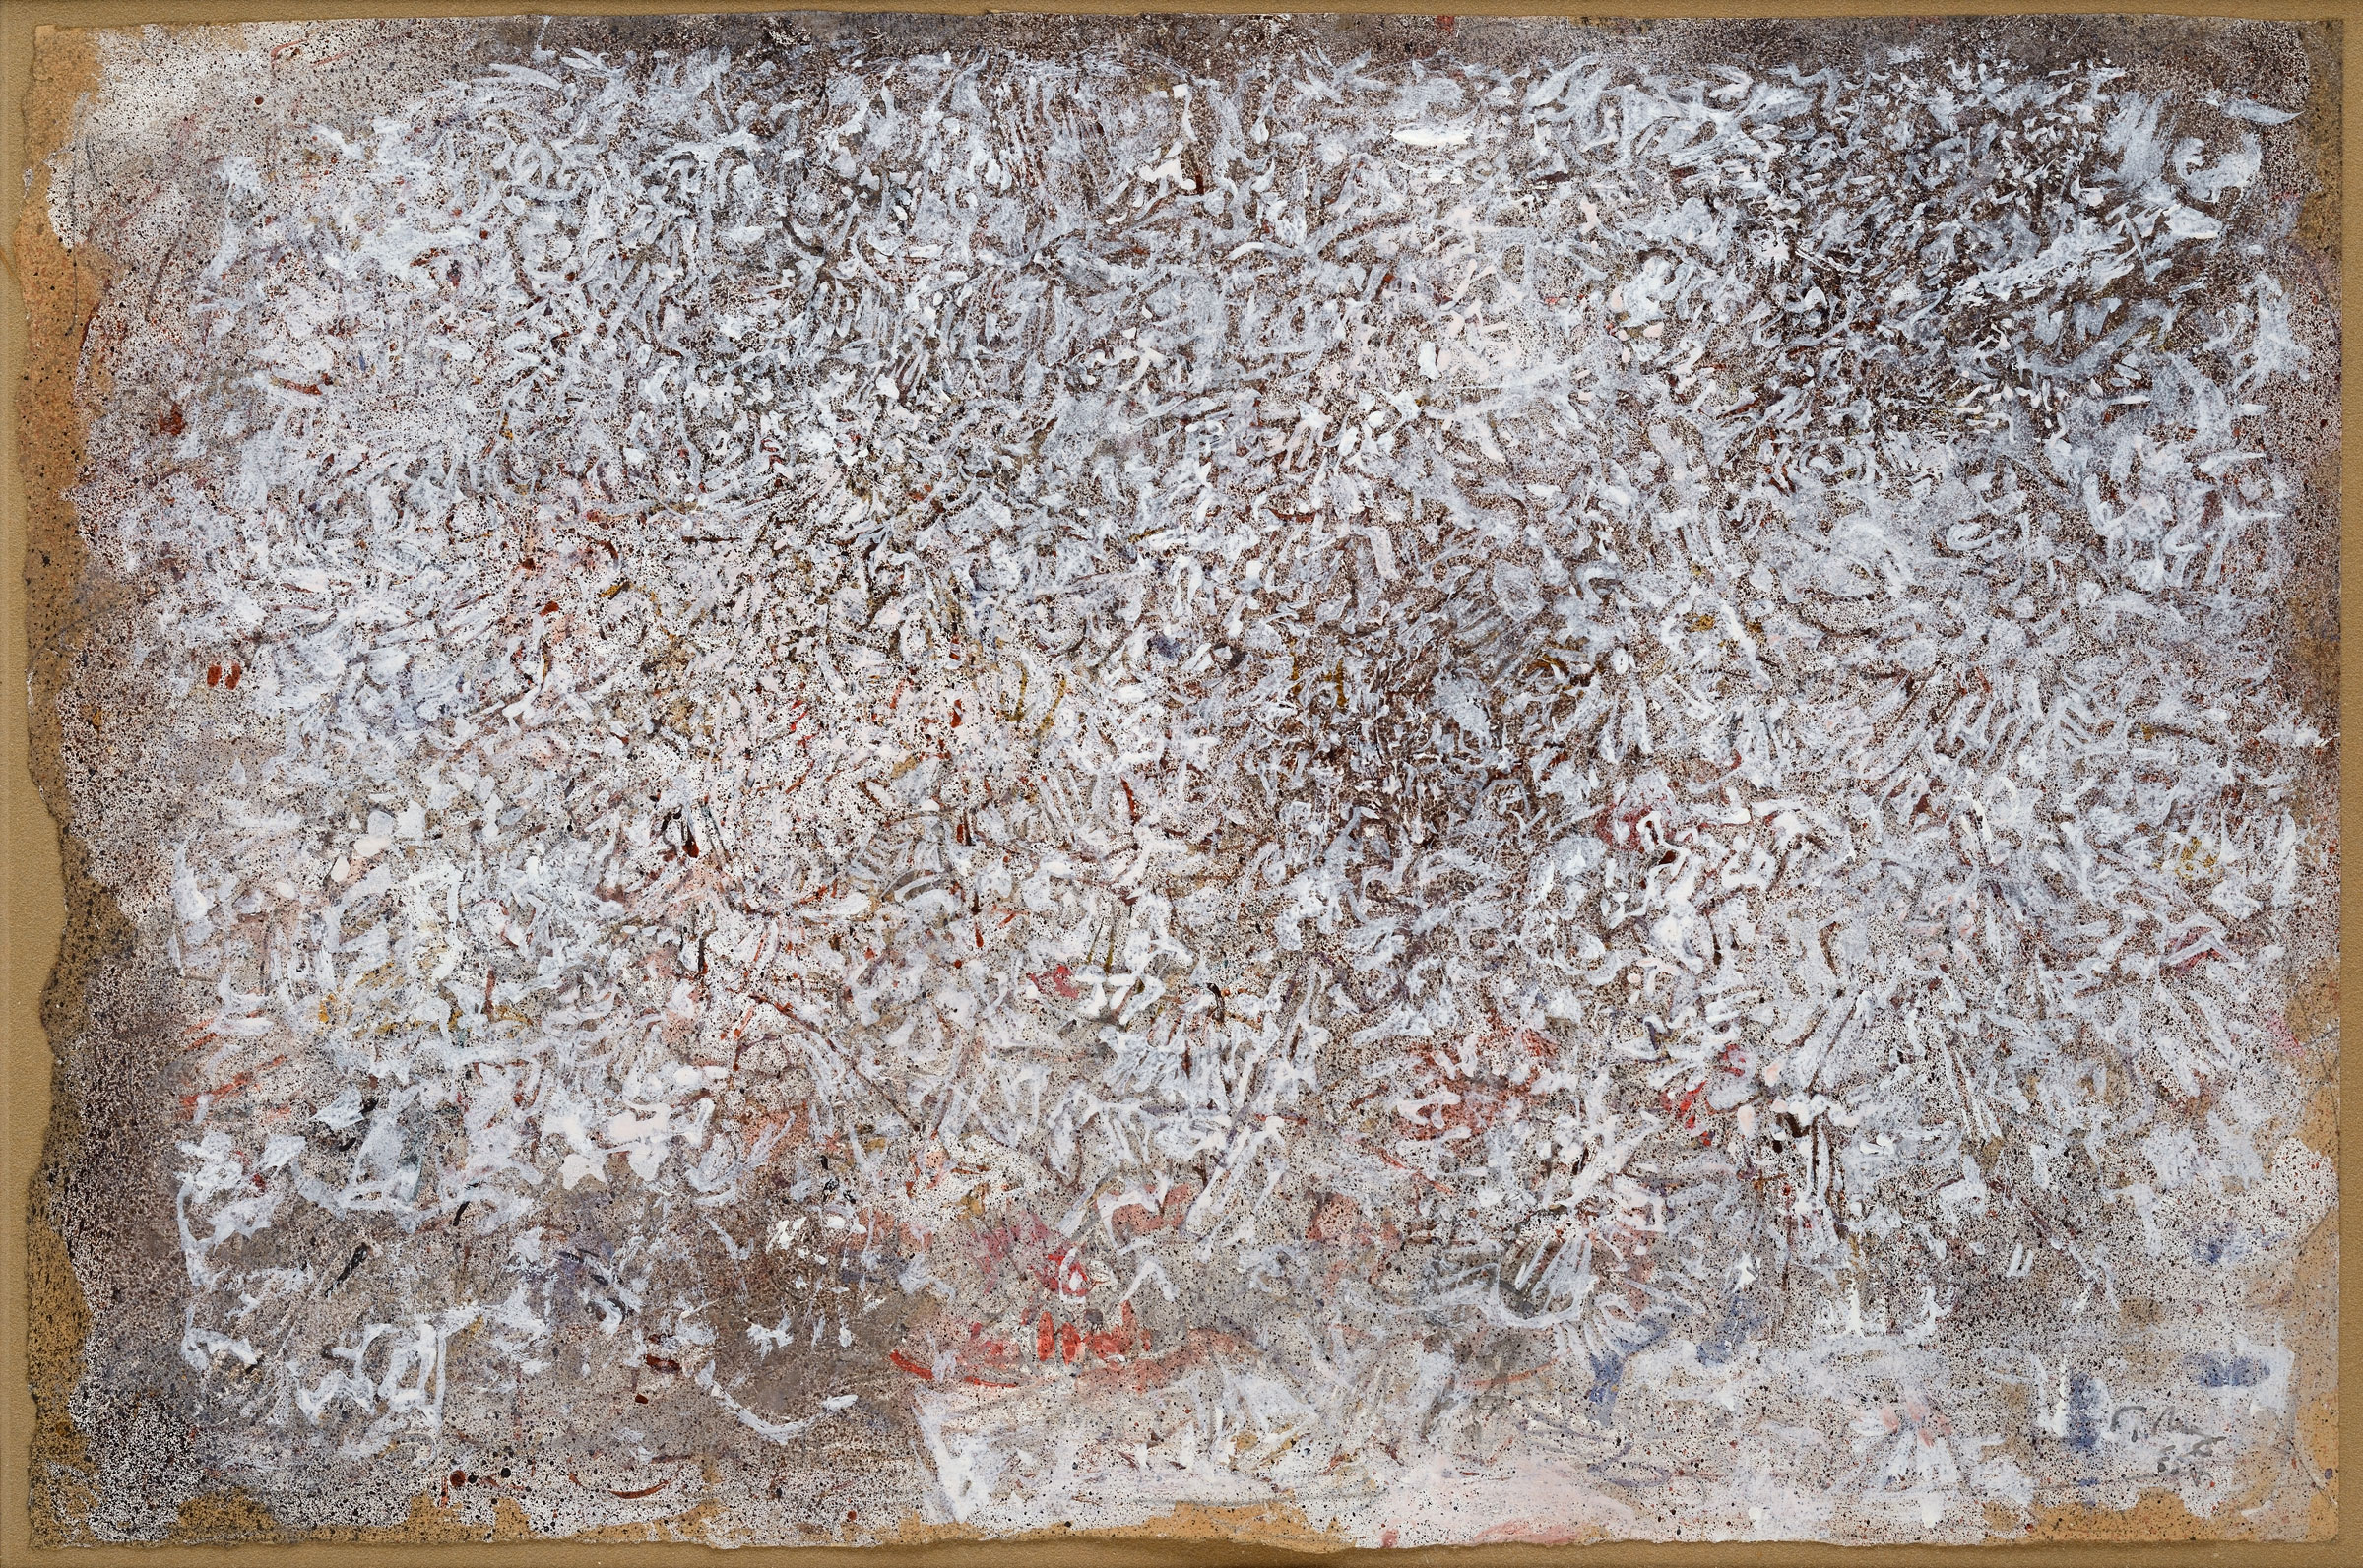 marktobey-white-space-1955